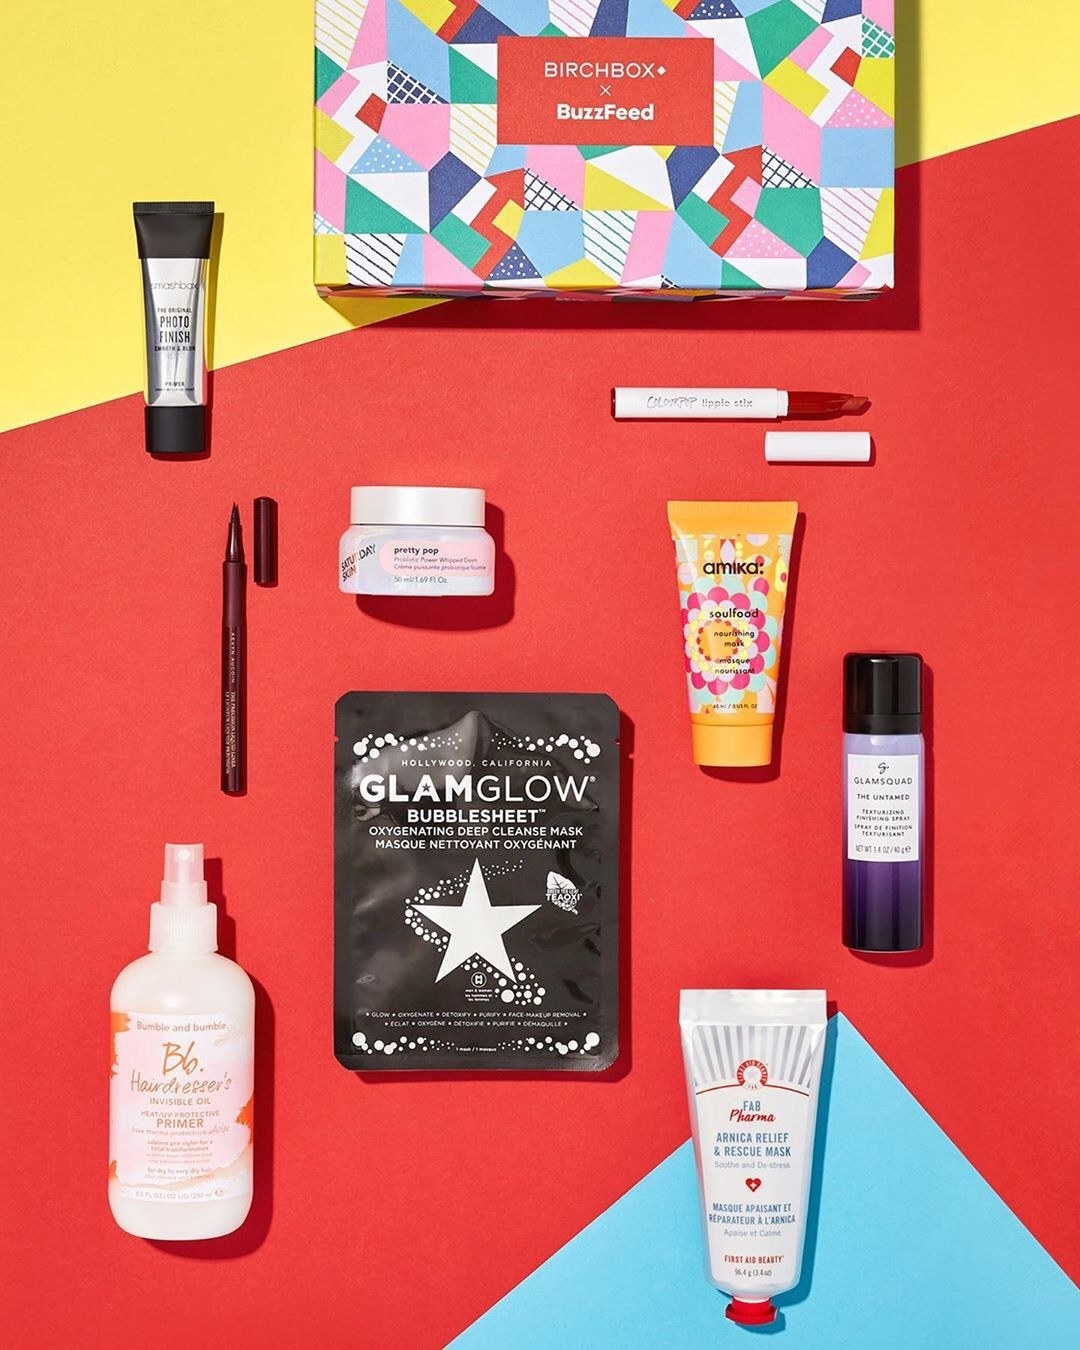 The beauty box and its included products